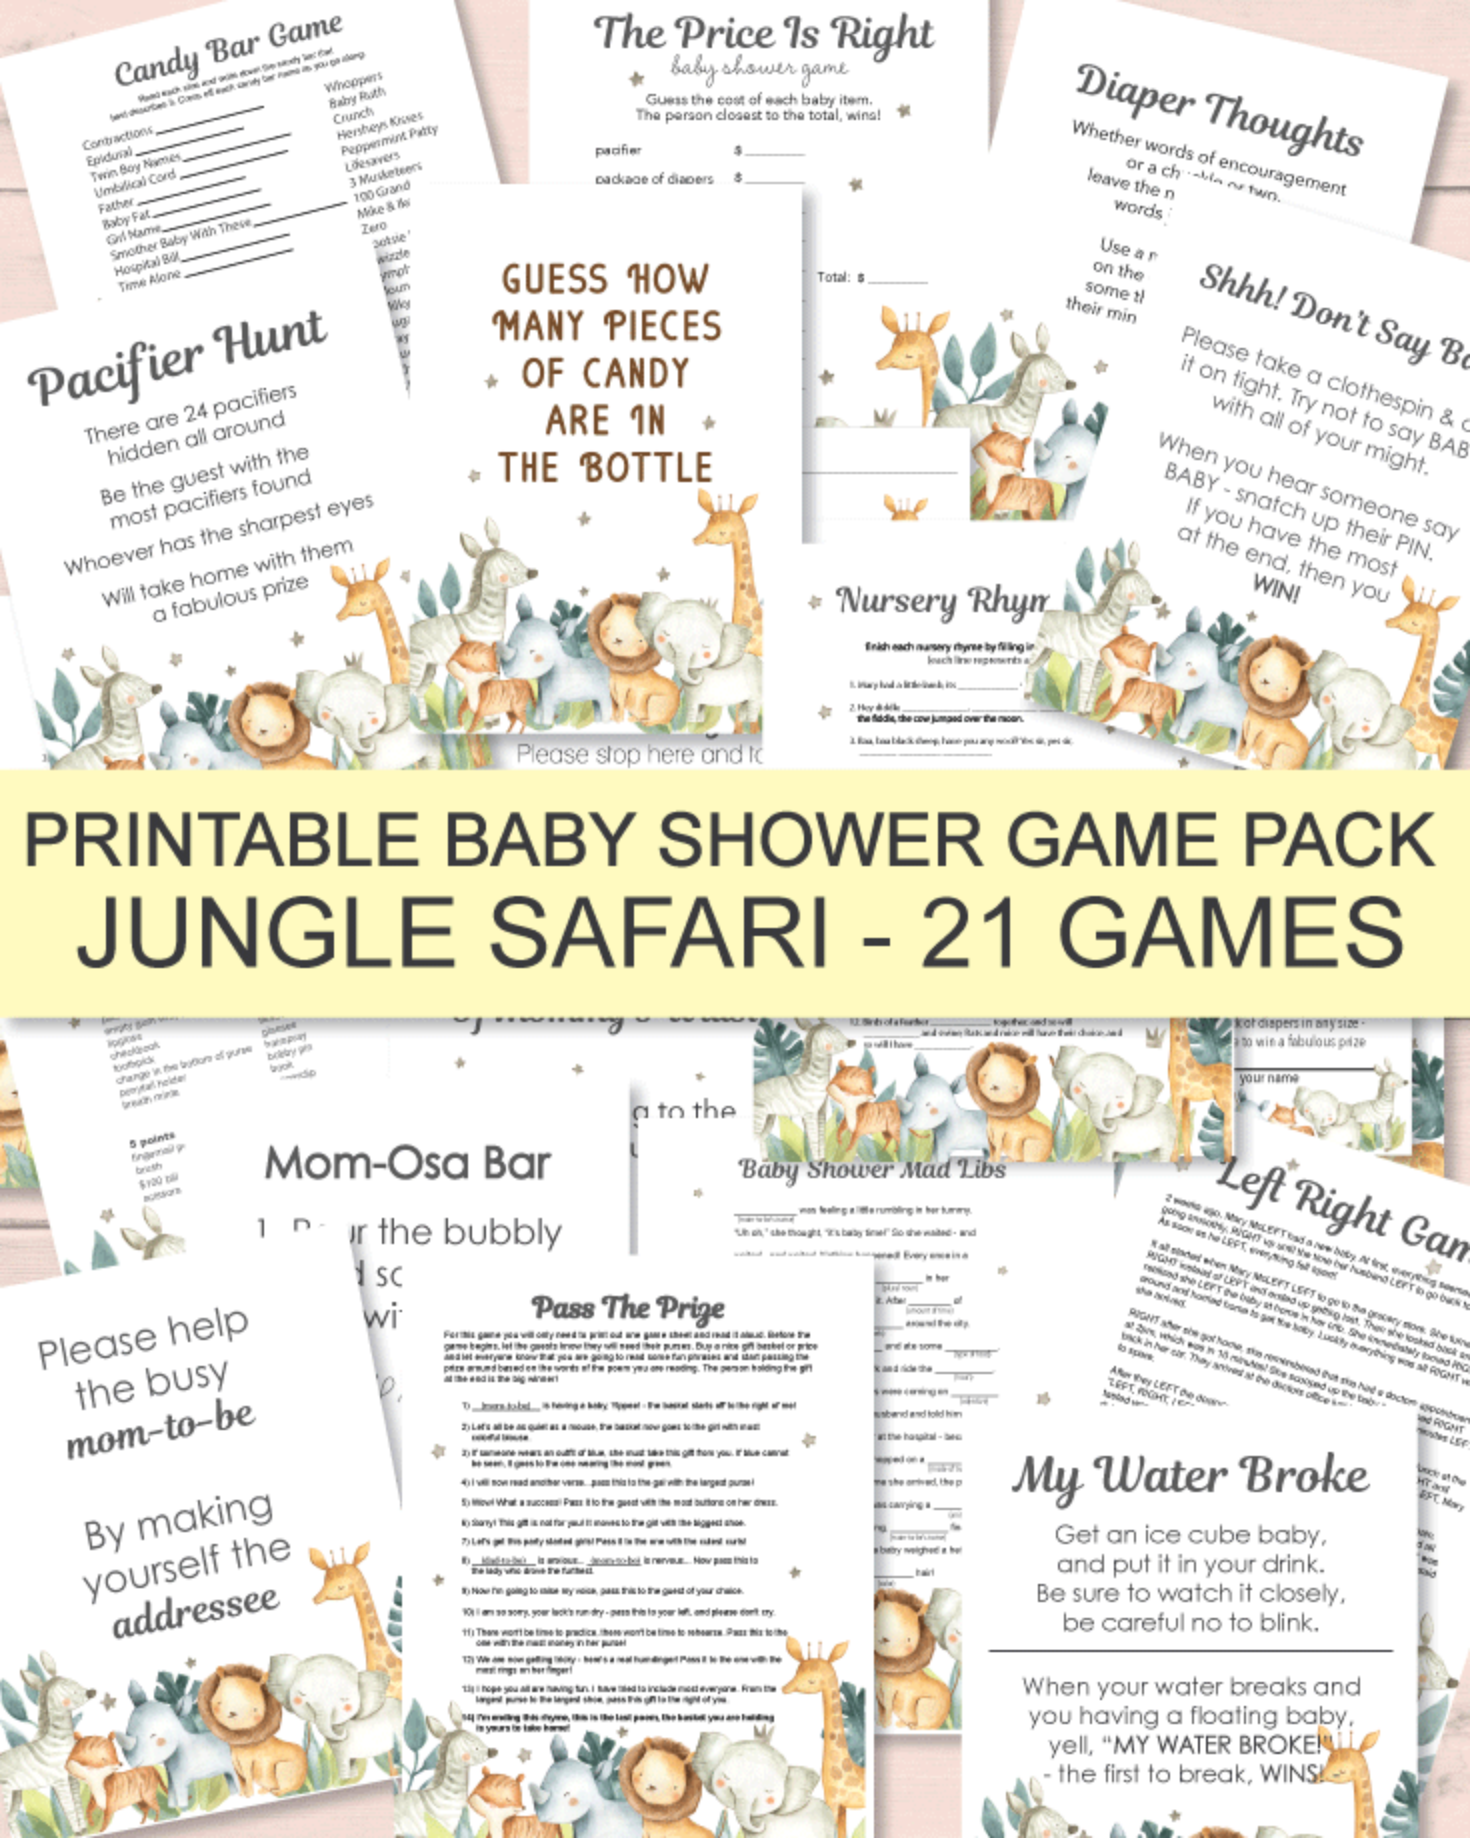 21 Printable Baby Shower Games - Super Game Pack - Jungle Safari Theme